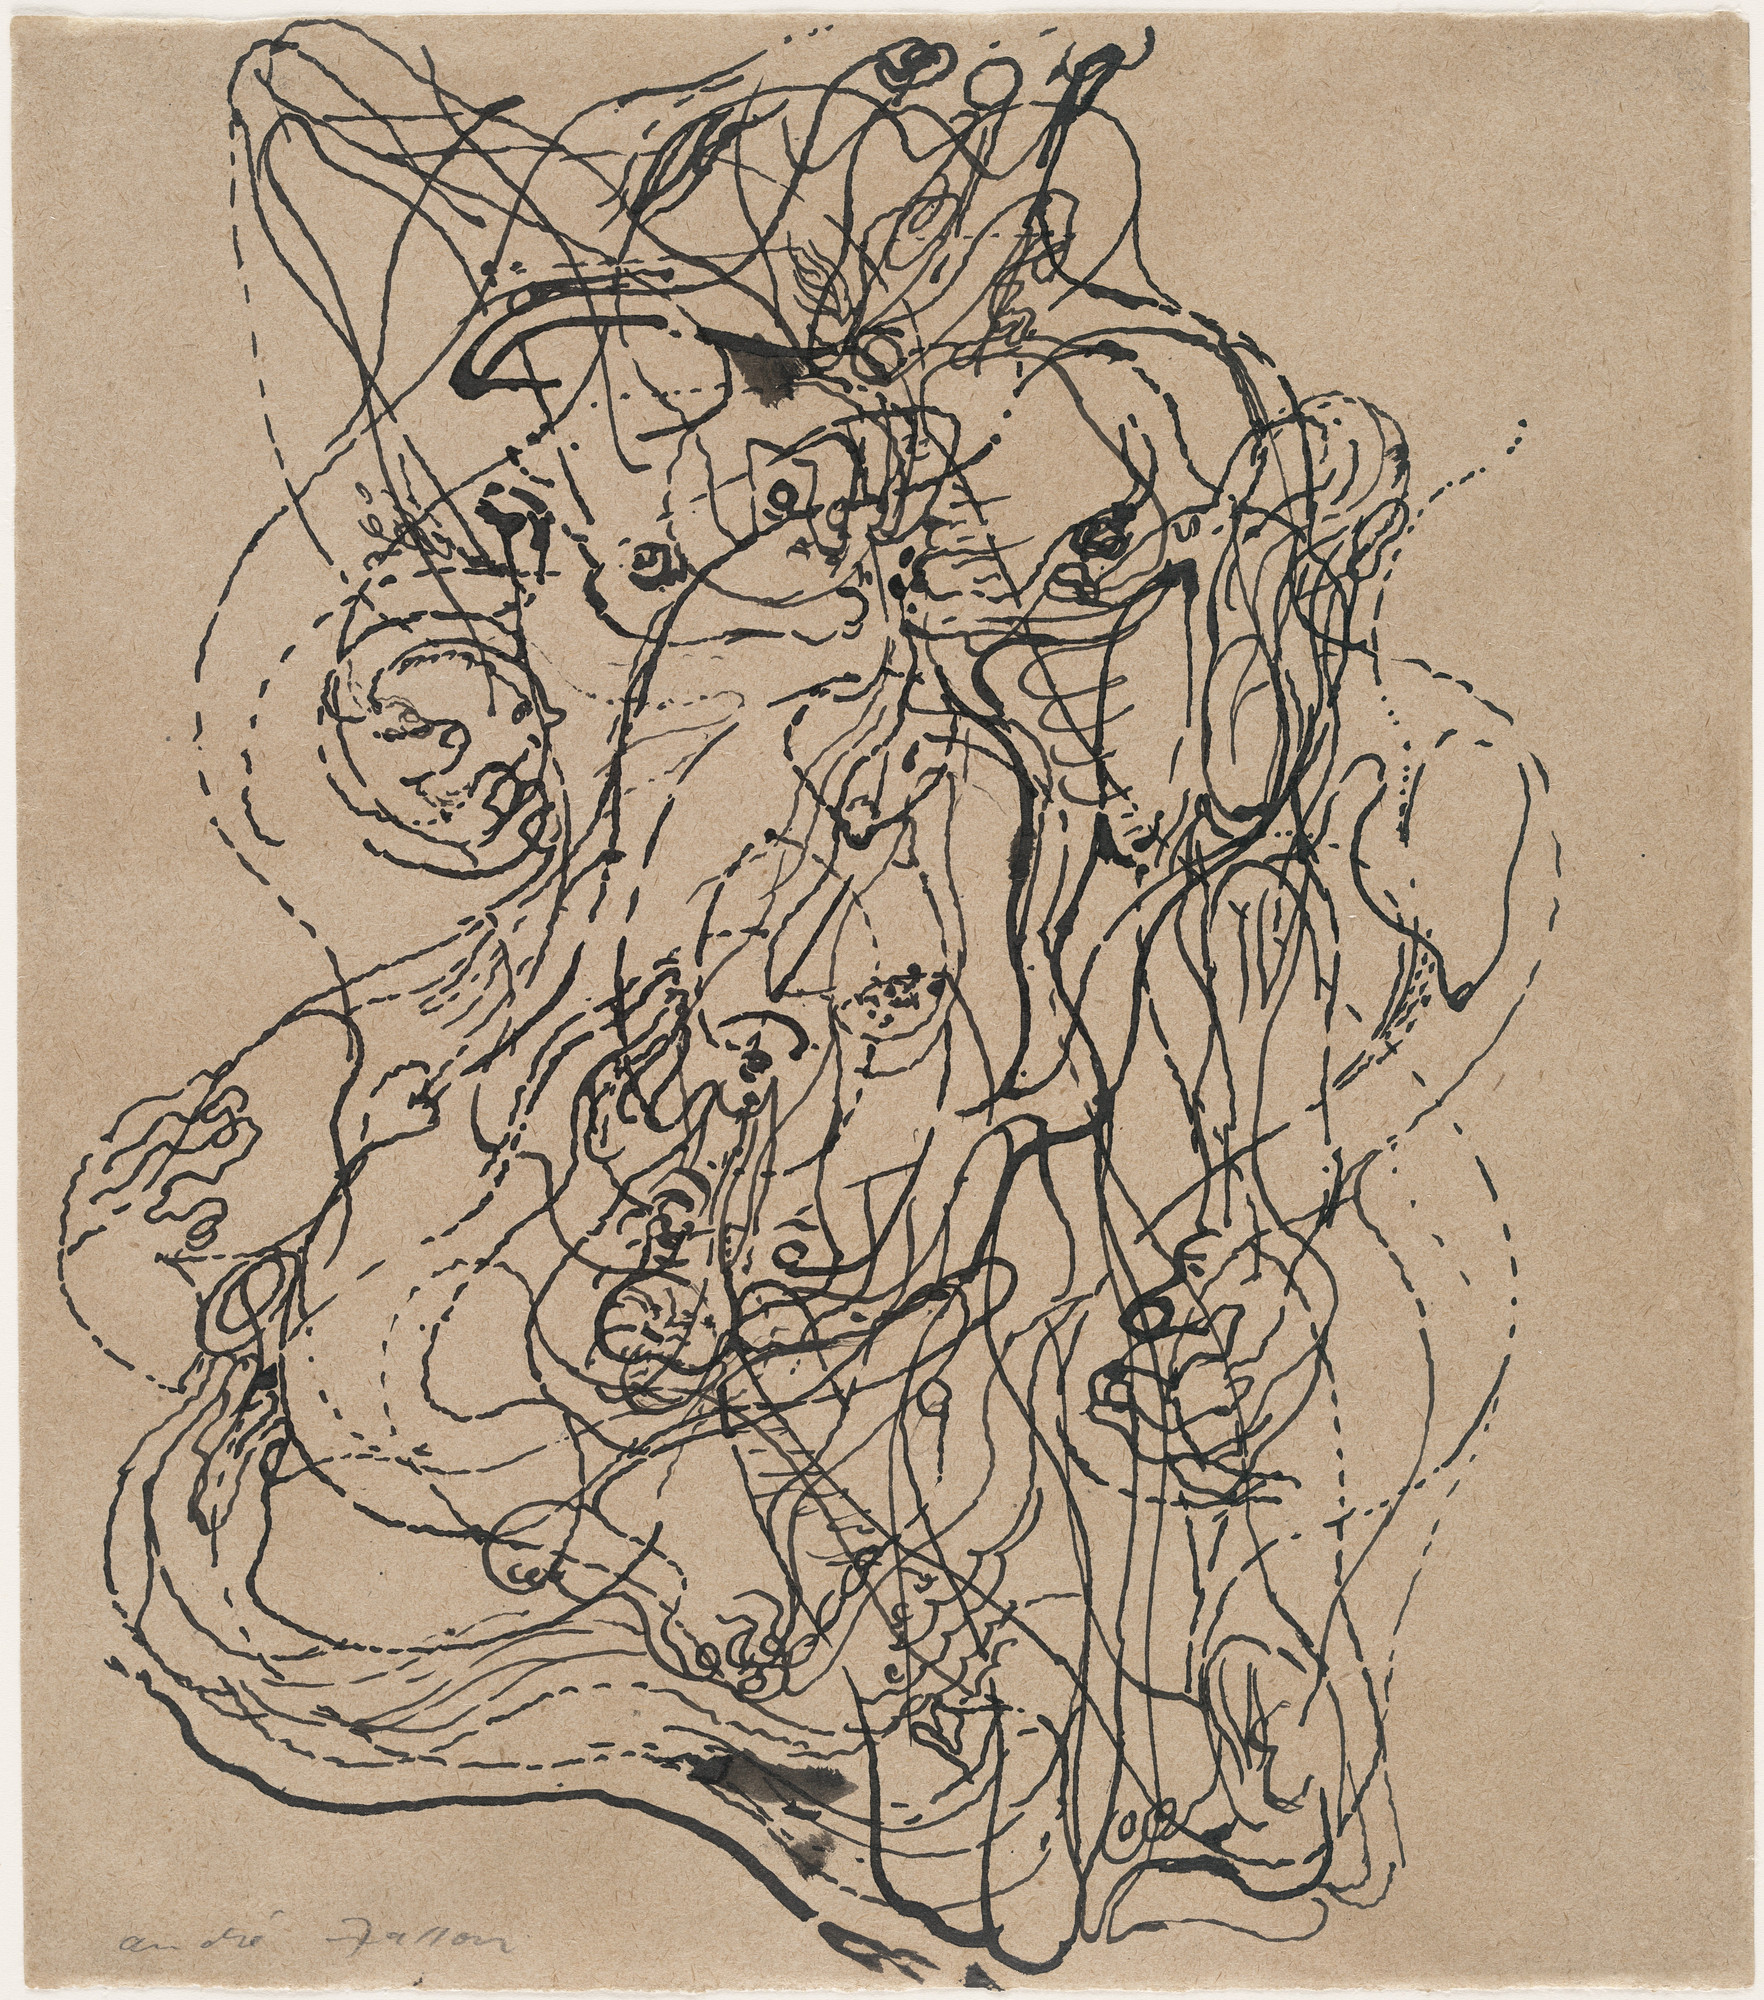 André Masson. Automatic Drawing. (1924)